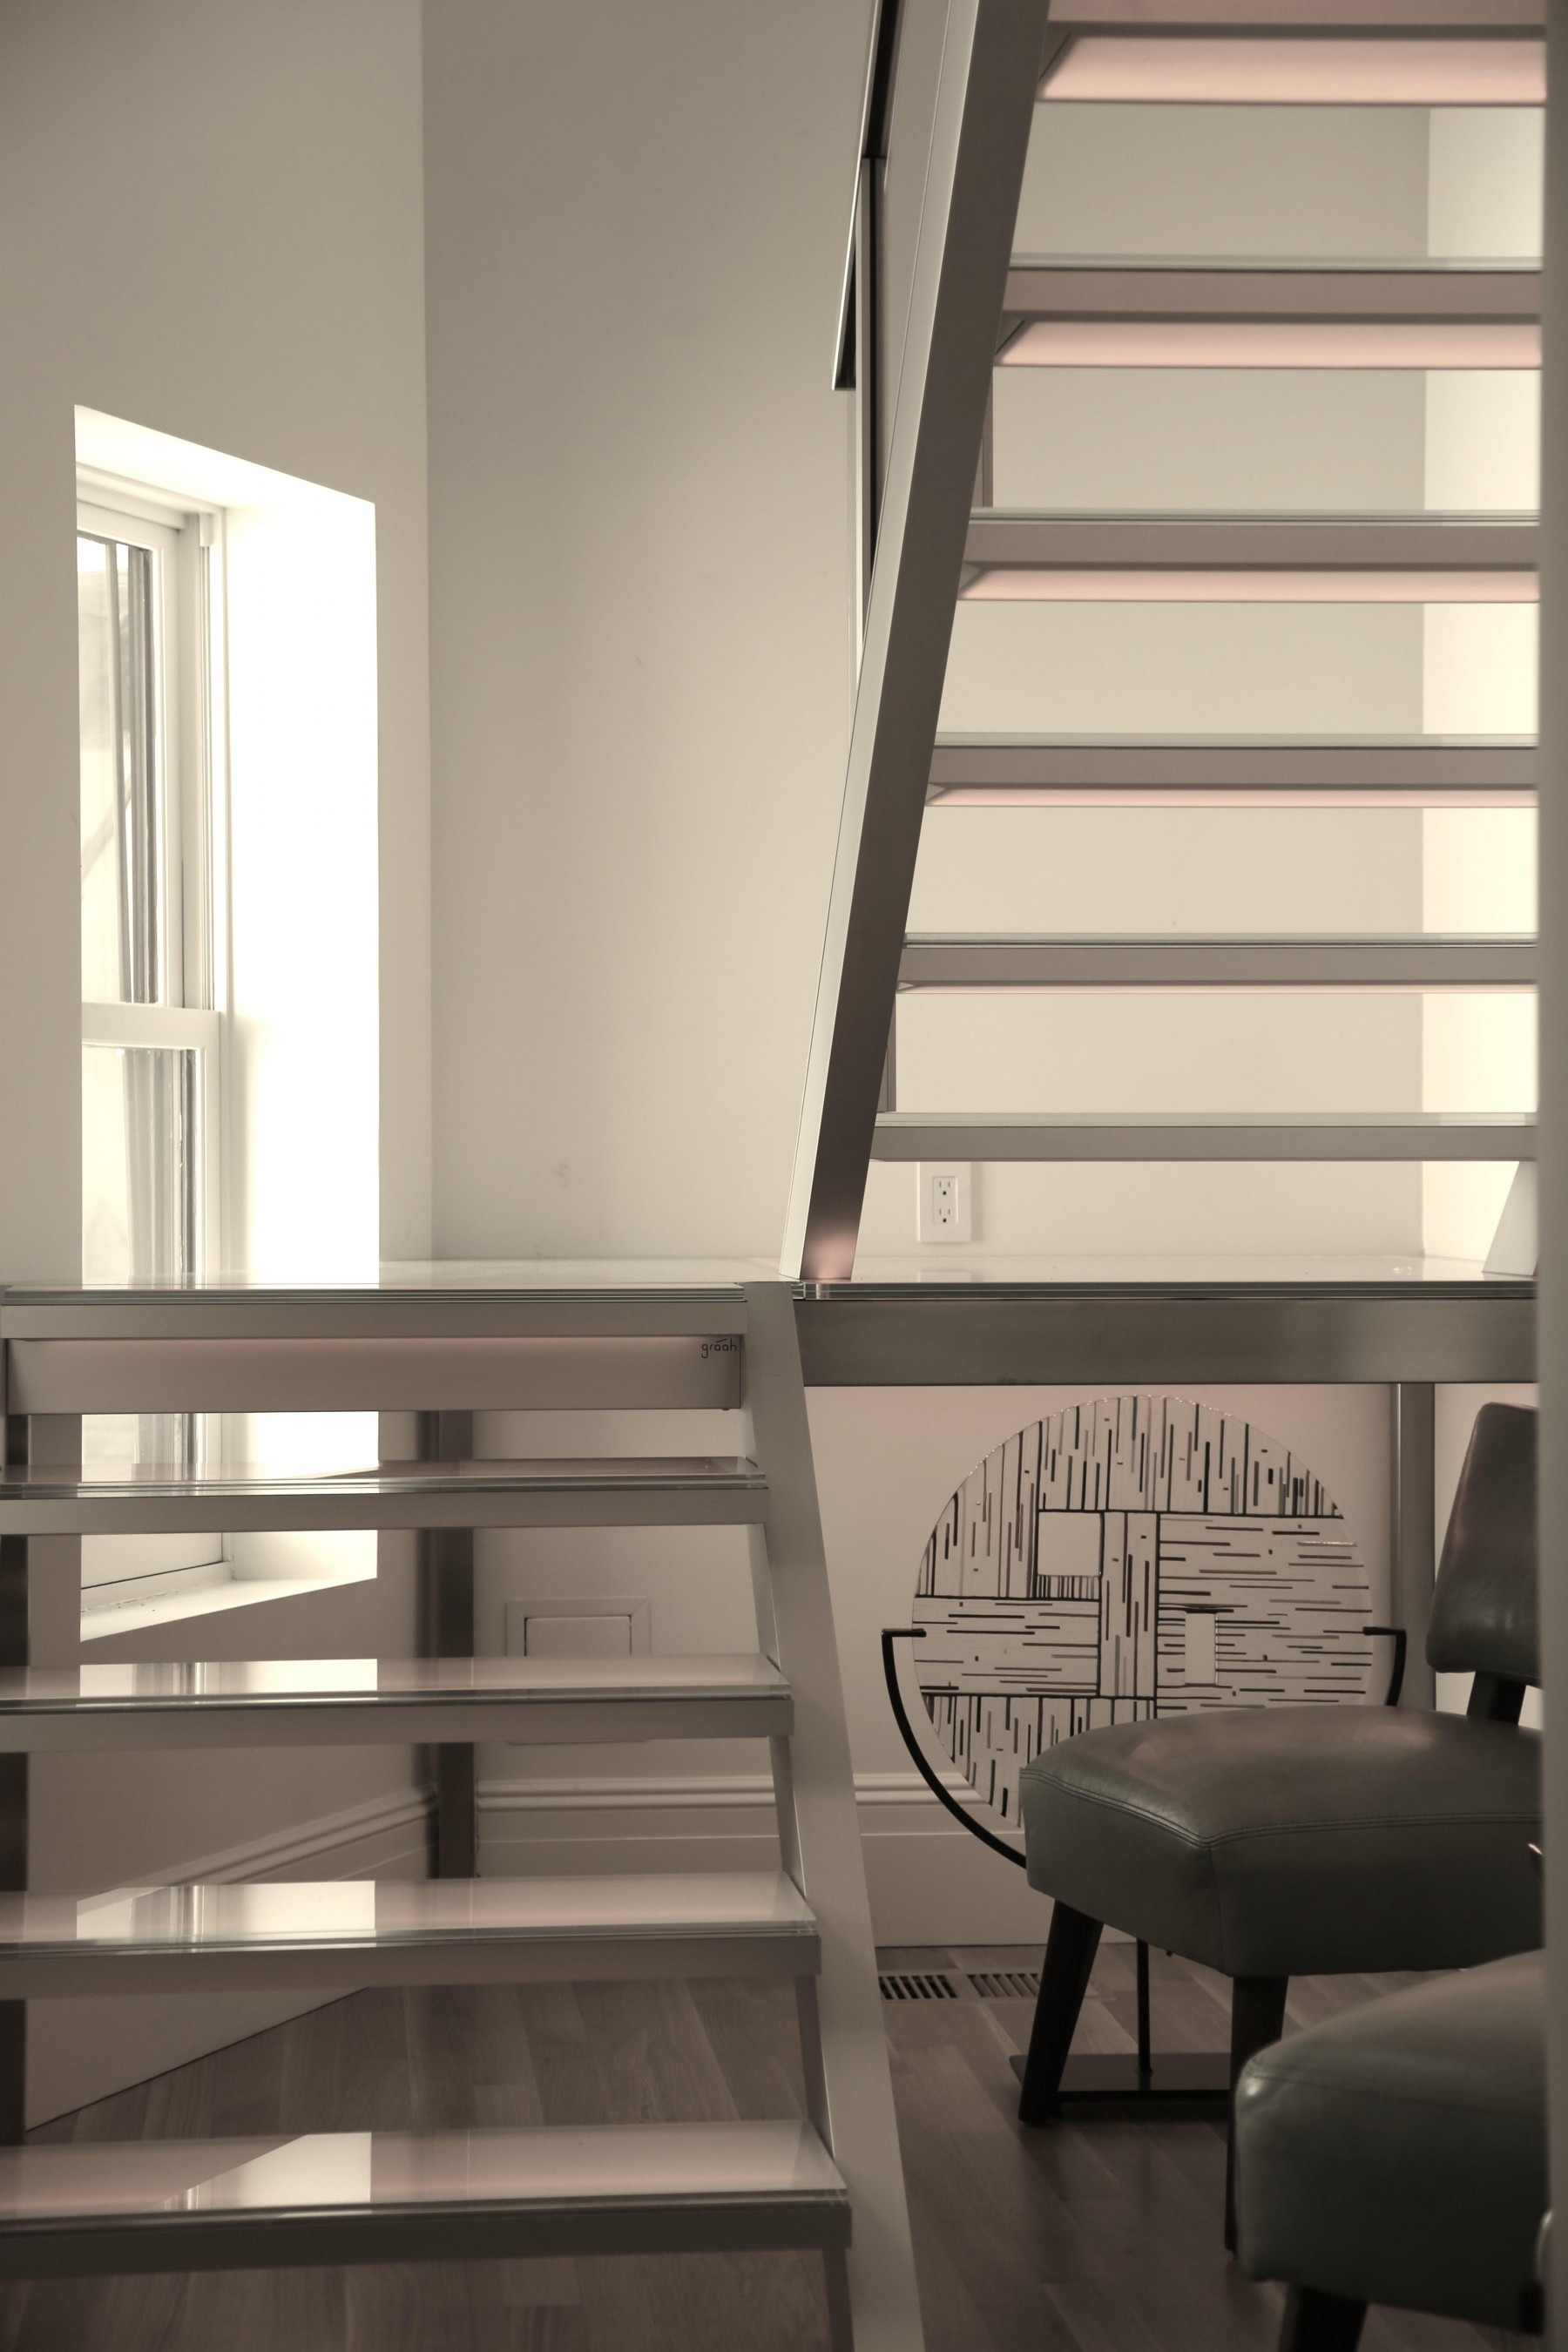 Spiral Staircase Alternatives For Your Nyc Duplex Renovation   Circular Stairs For Sale   Rustic   Ornate   Interior   Shop   Slide